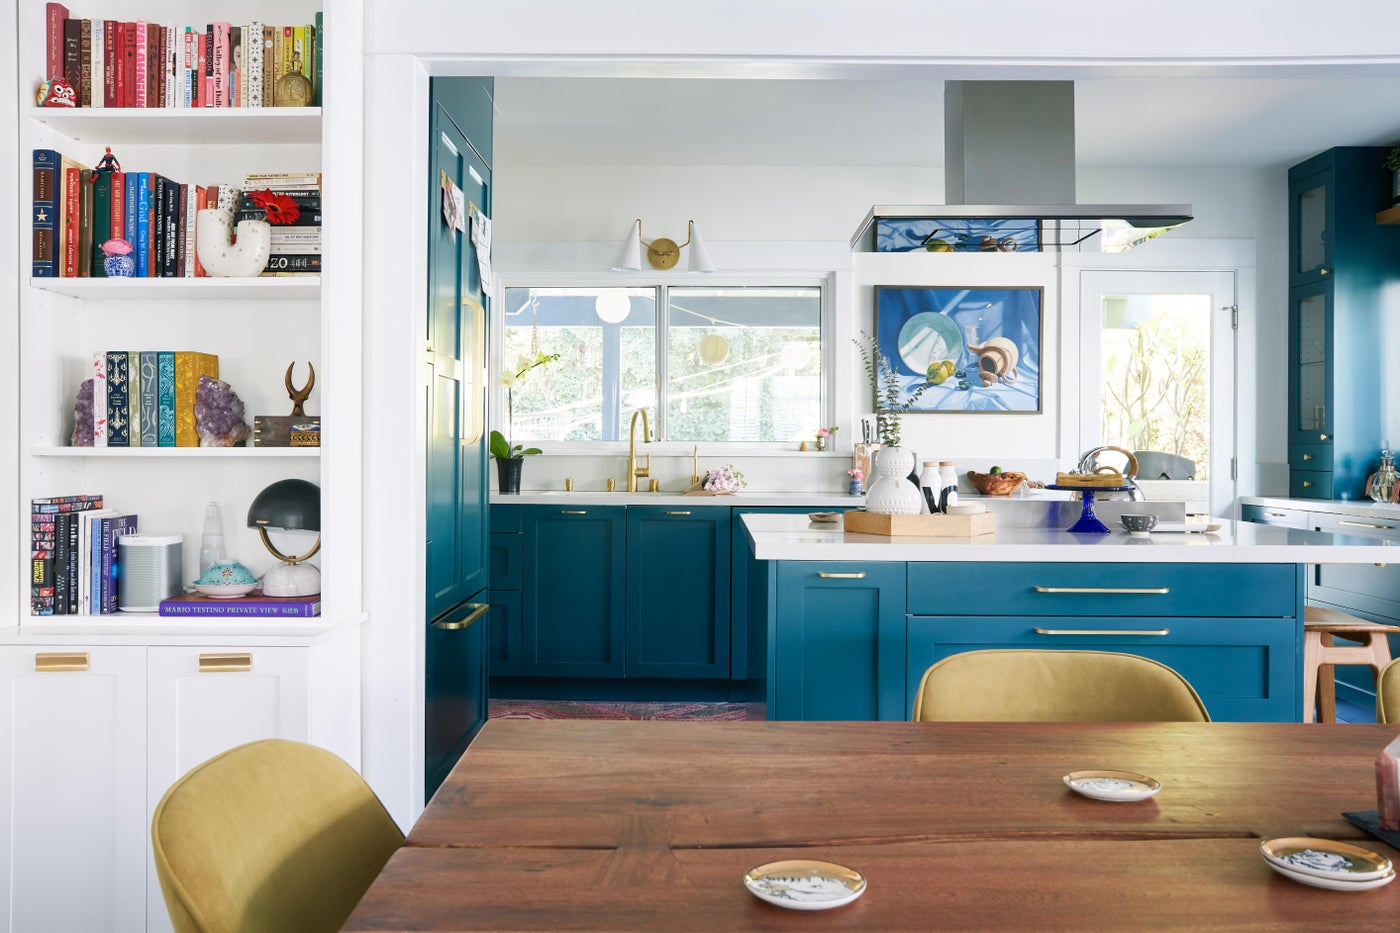 Bungalow Charm/ A centenarian bungalow begs for a 21st century aesthetic while honoring its history. With teal shaker cabinetry, handmade tiles and functional storage, its new open floor plan cheerily embraces the West Coast way of life.